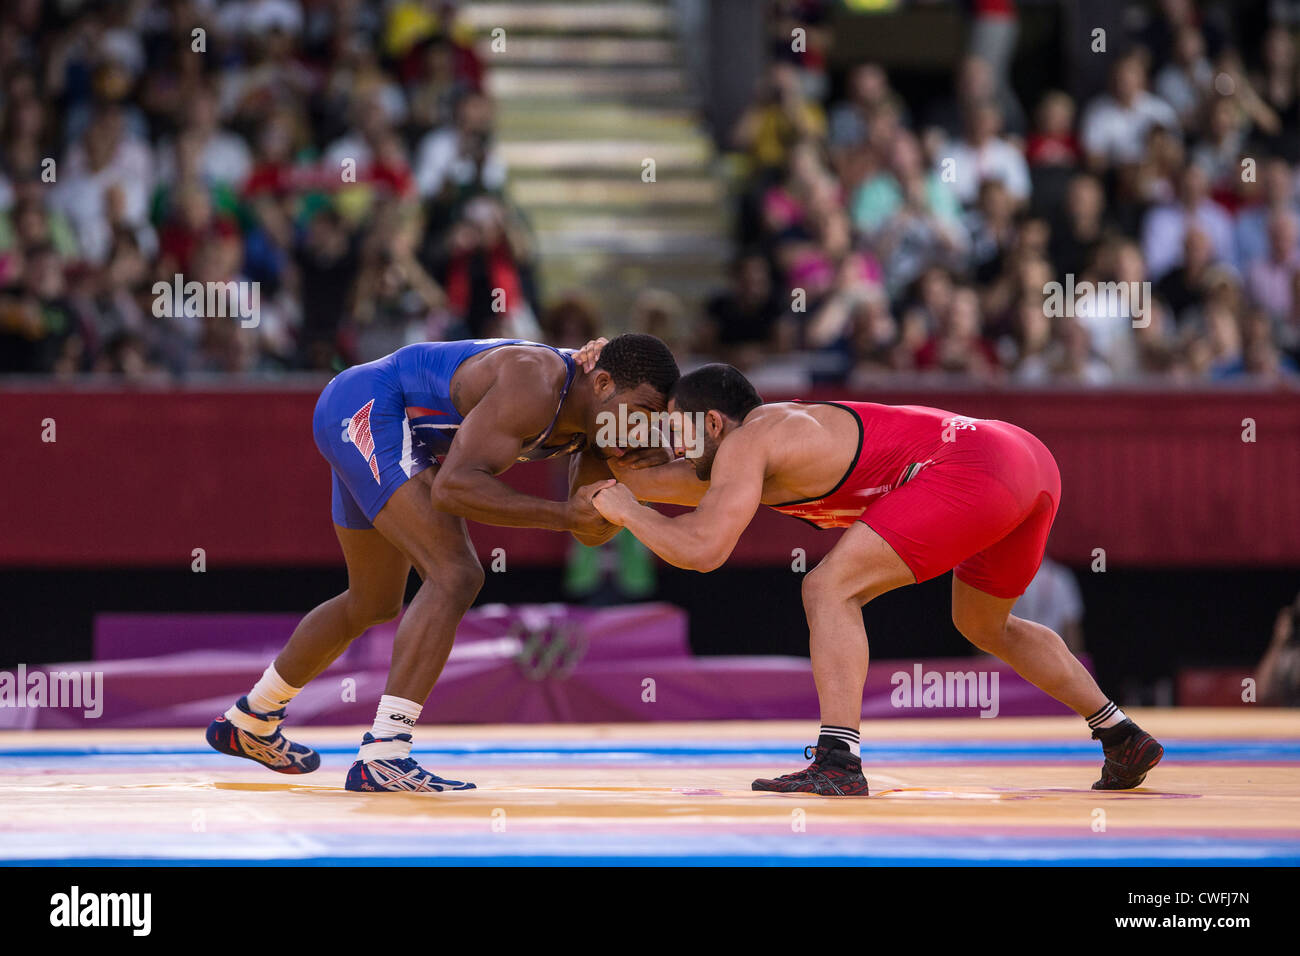 Giordano Ernest Burroughs (USA) -B- vs Sadegh Saeed Goudarzi (IRI) in Uomini 74kg Freestyle Wrestling all'Olympic Immagini Stock